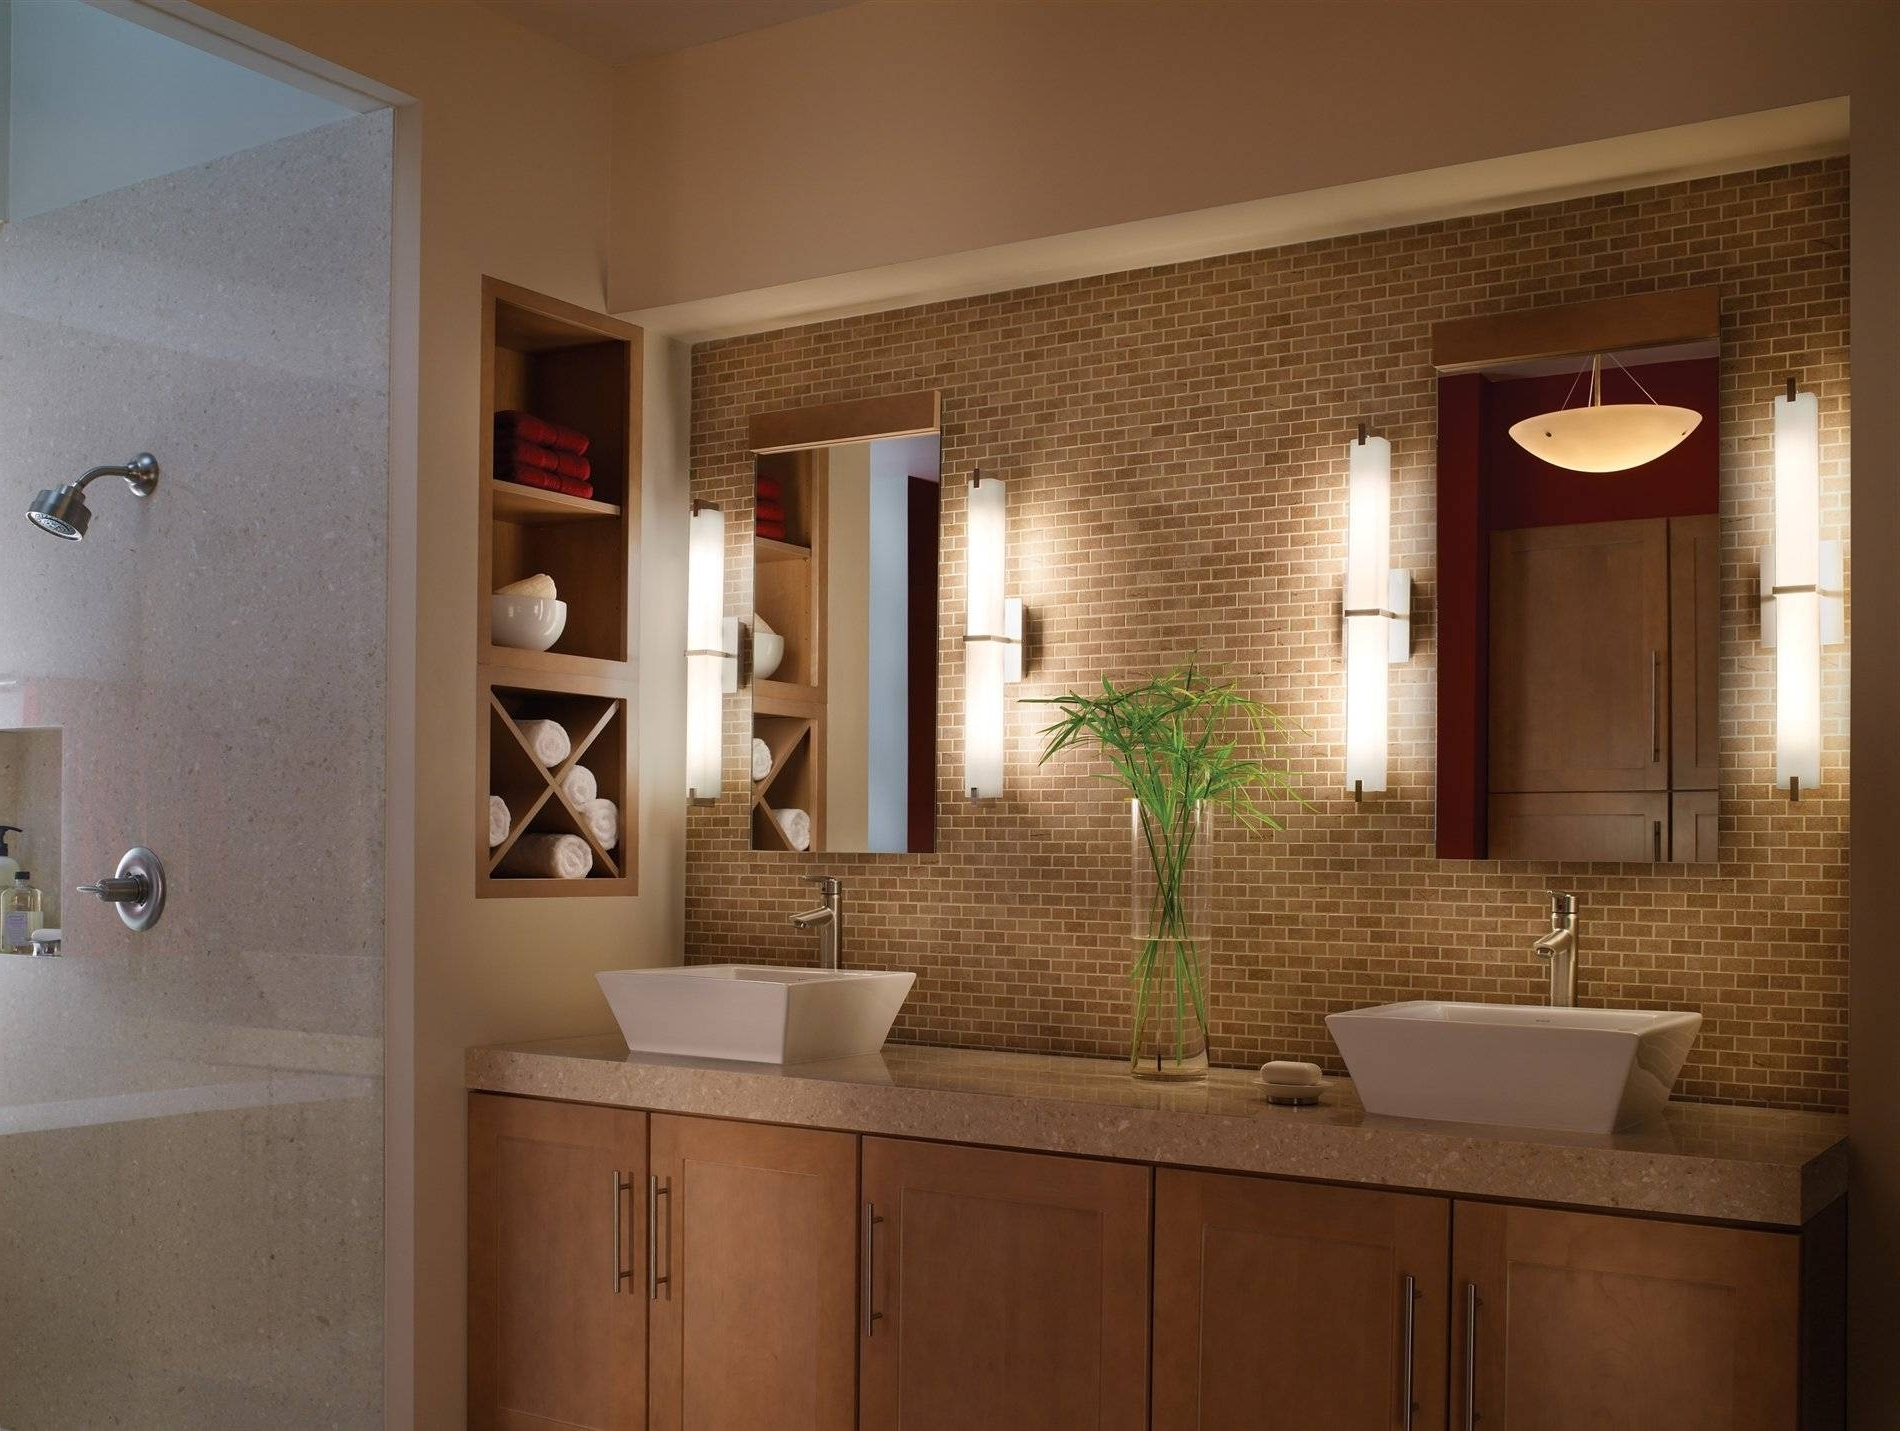 2019 Bathroom Design : Inspirationalbathroom Vanity Lighting @ Unique With Chandelier Bathroom Vanity Lighting (View 1 of 20)